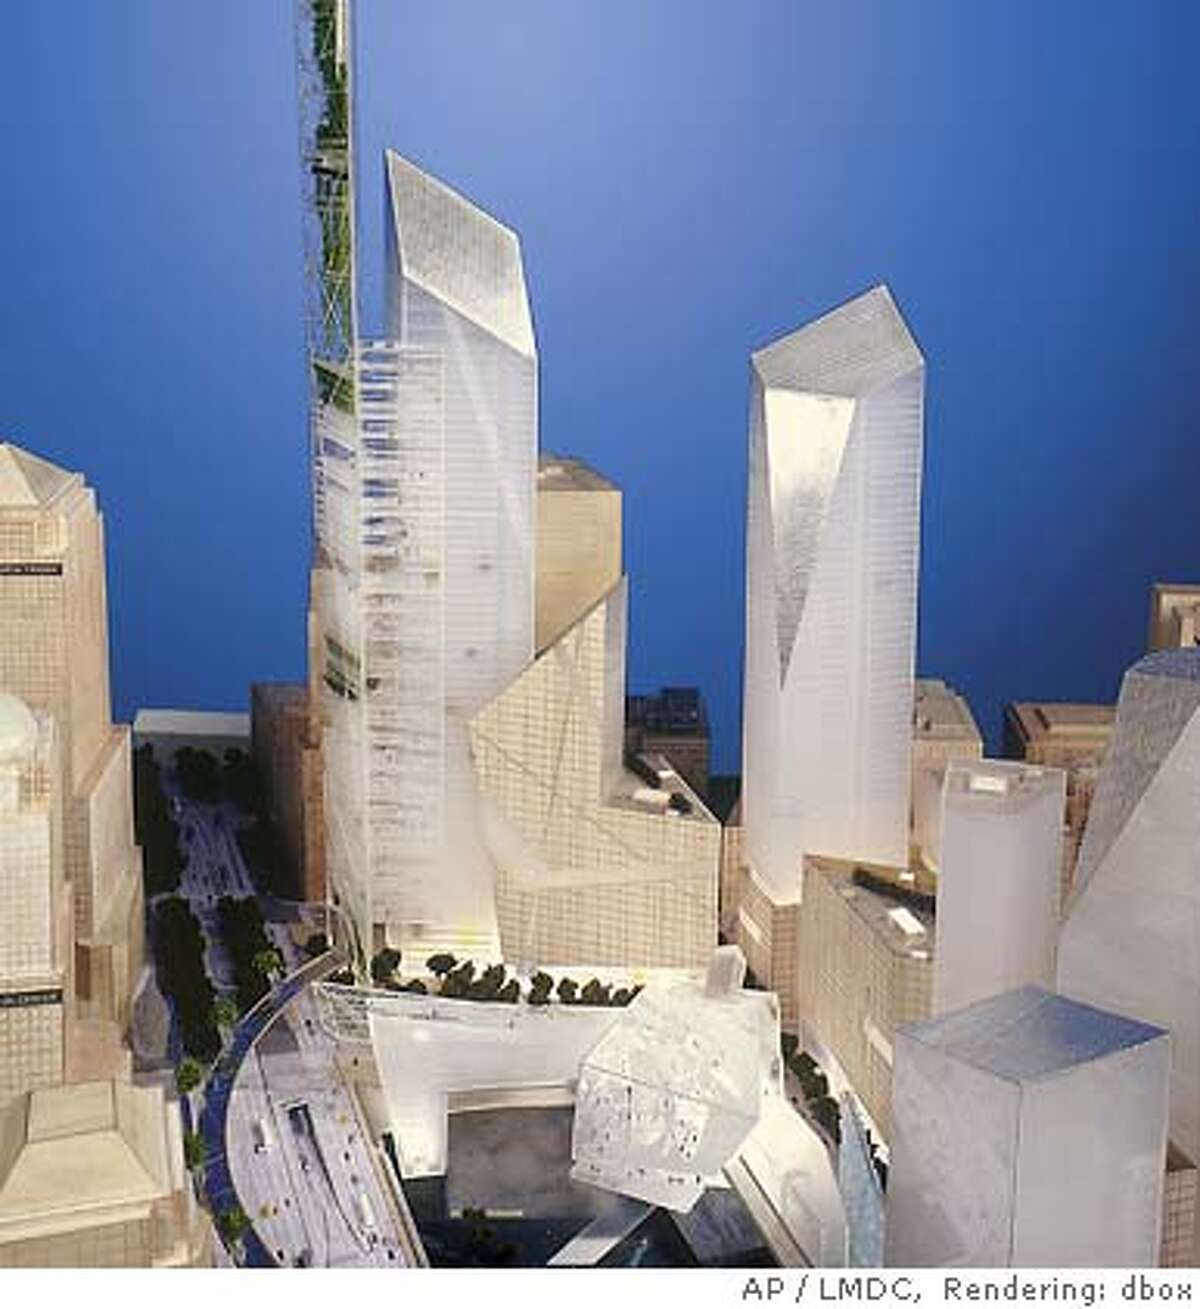 ** ONE OF SEVEN IMAGES CROPPED FOR UNIFORM SIZE ** This one of the proposed designs for the rebuilding of New York's World Trade Center, by Studio Daniel Libeskind, presented in New York Wednesday Dec. 18, 2002. Seven teams of architects from around the world presented their designs, beginning an intensive six weeks of review before a final plan is chosen to develop the 16-acre site and the surrounding neighborhood.(AP Photo/LMDC) CAT ONE OF SEVEN IMAGES CROPPED FOR UNIFORM SIZE